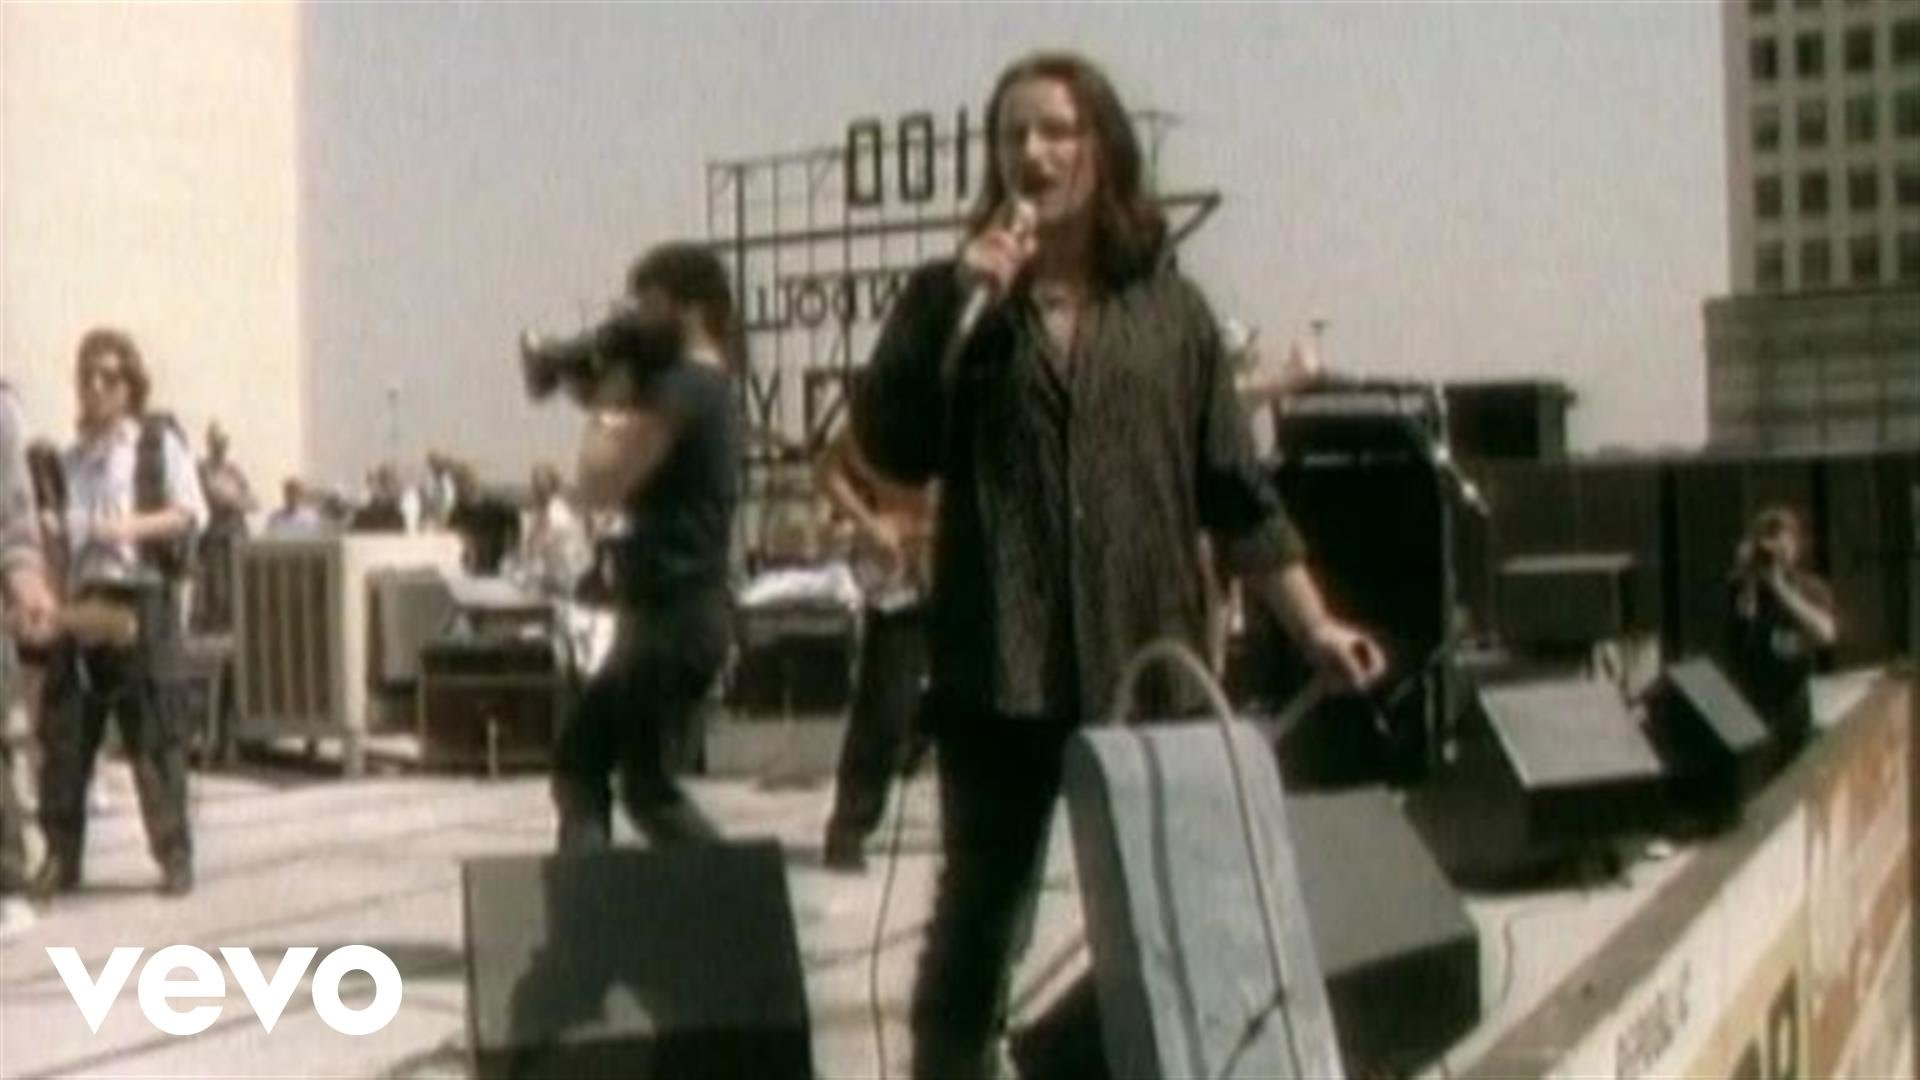 Today's the day that U2 performed on top of a building...and got shut down